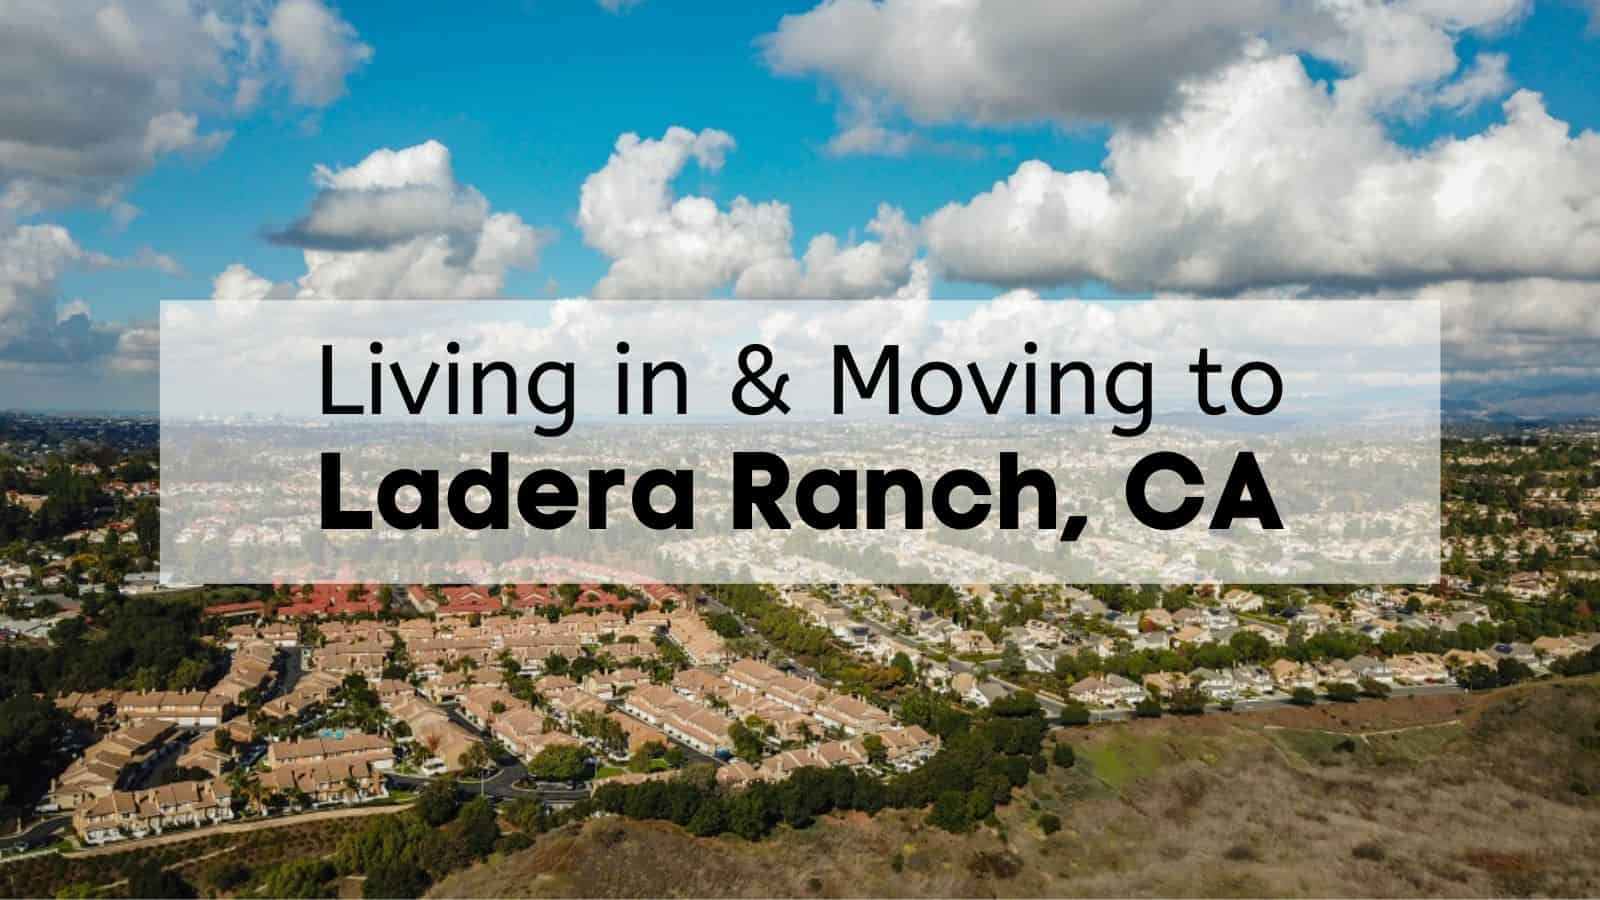 Living in & Moving to Ladera Ranch, CA